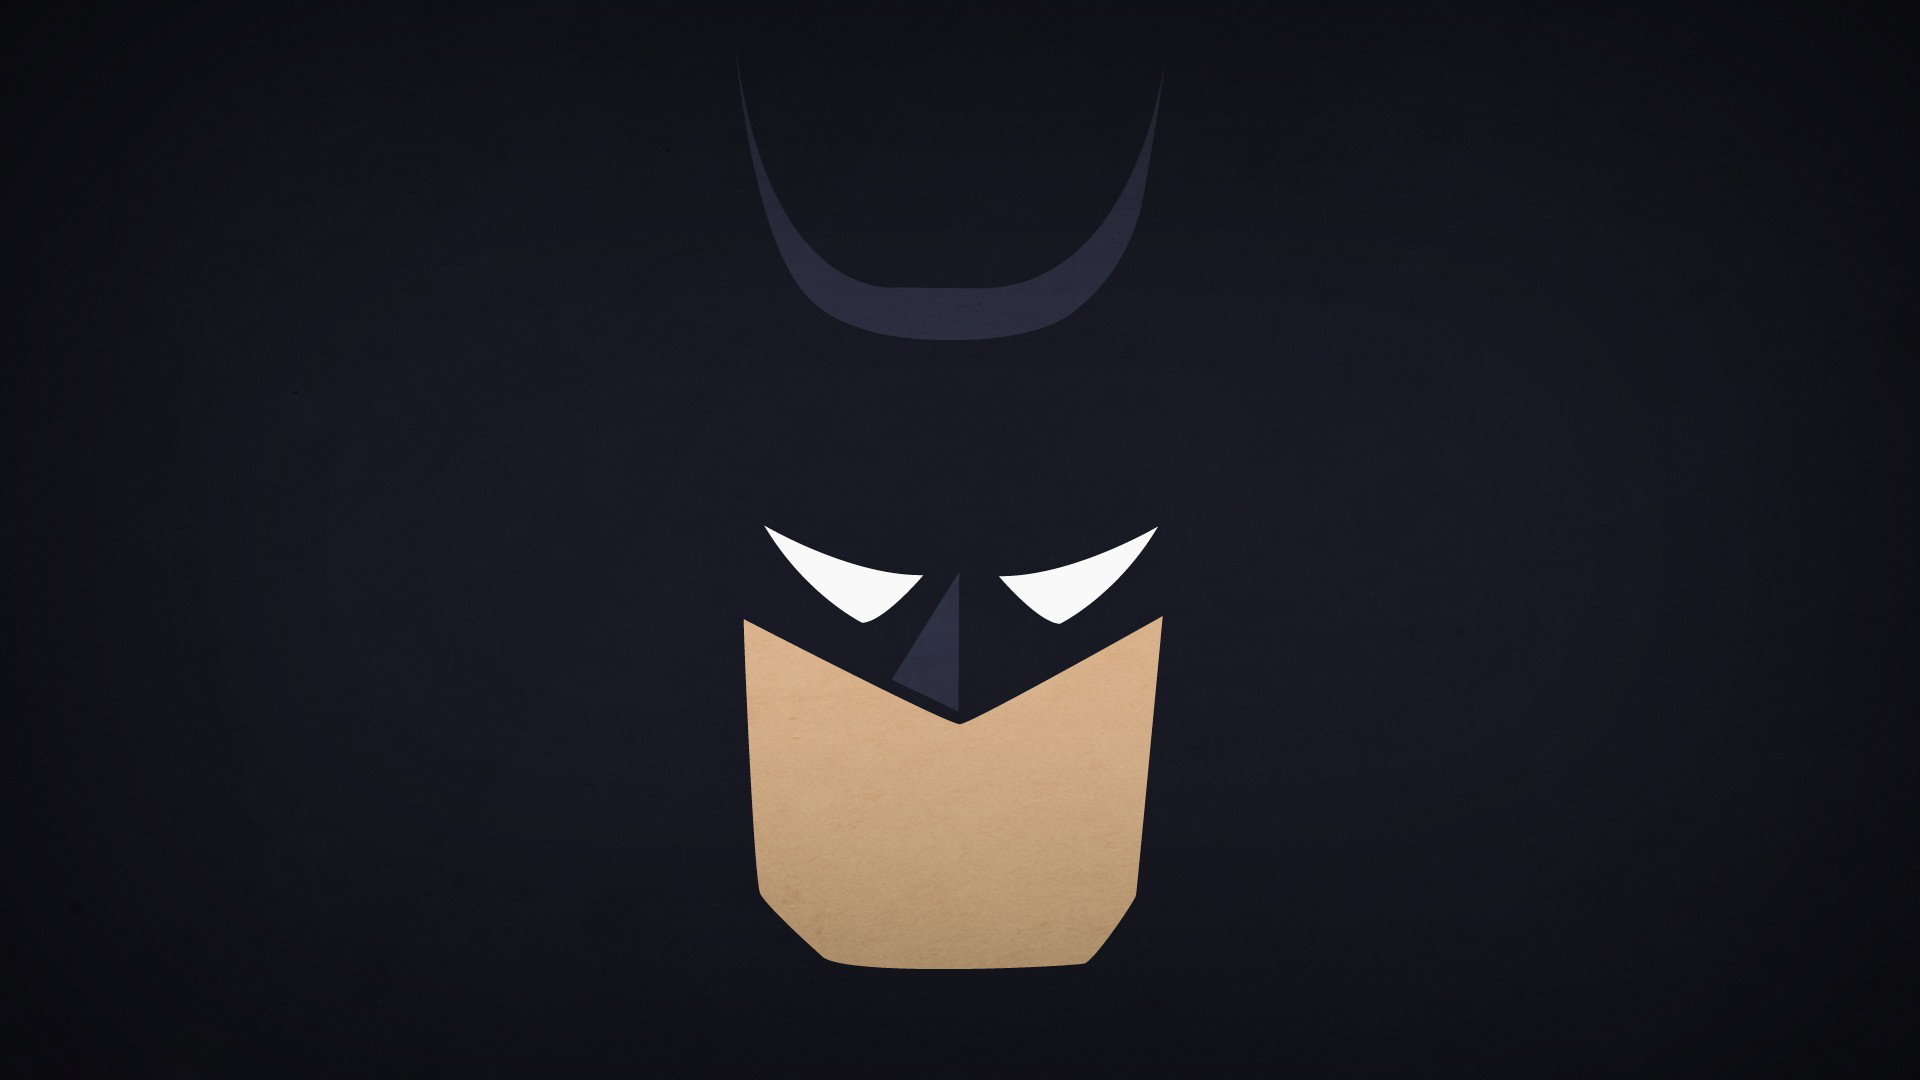 Batman HD Wallpapers for Desktop (3)